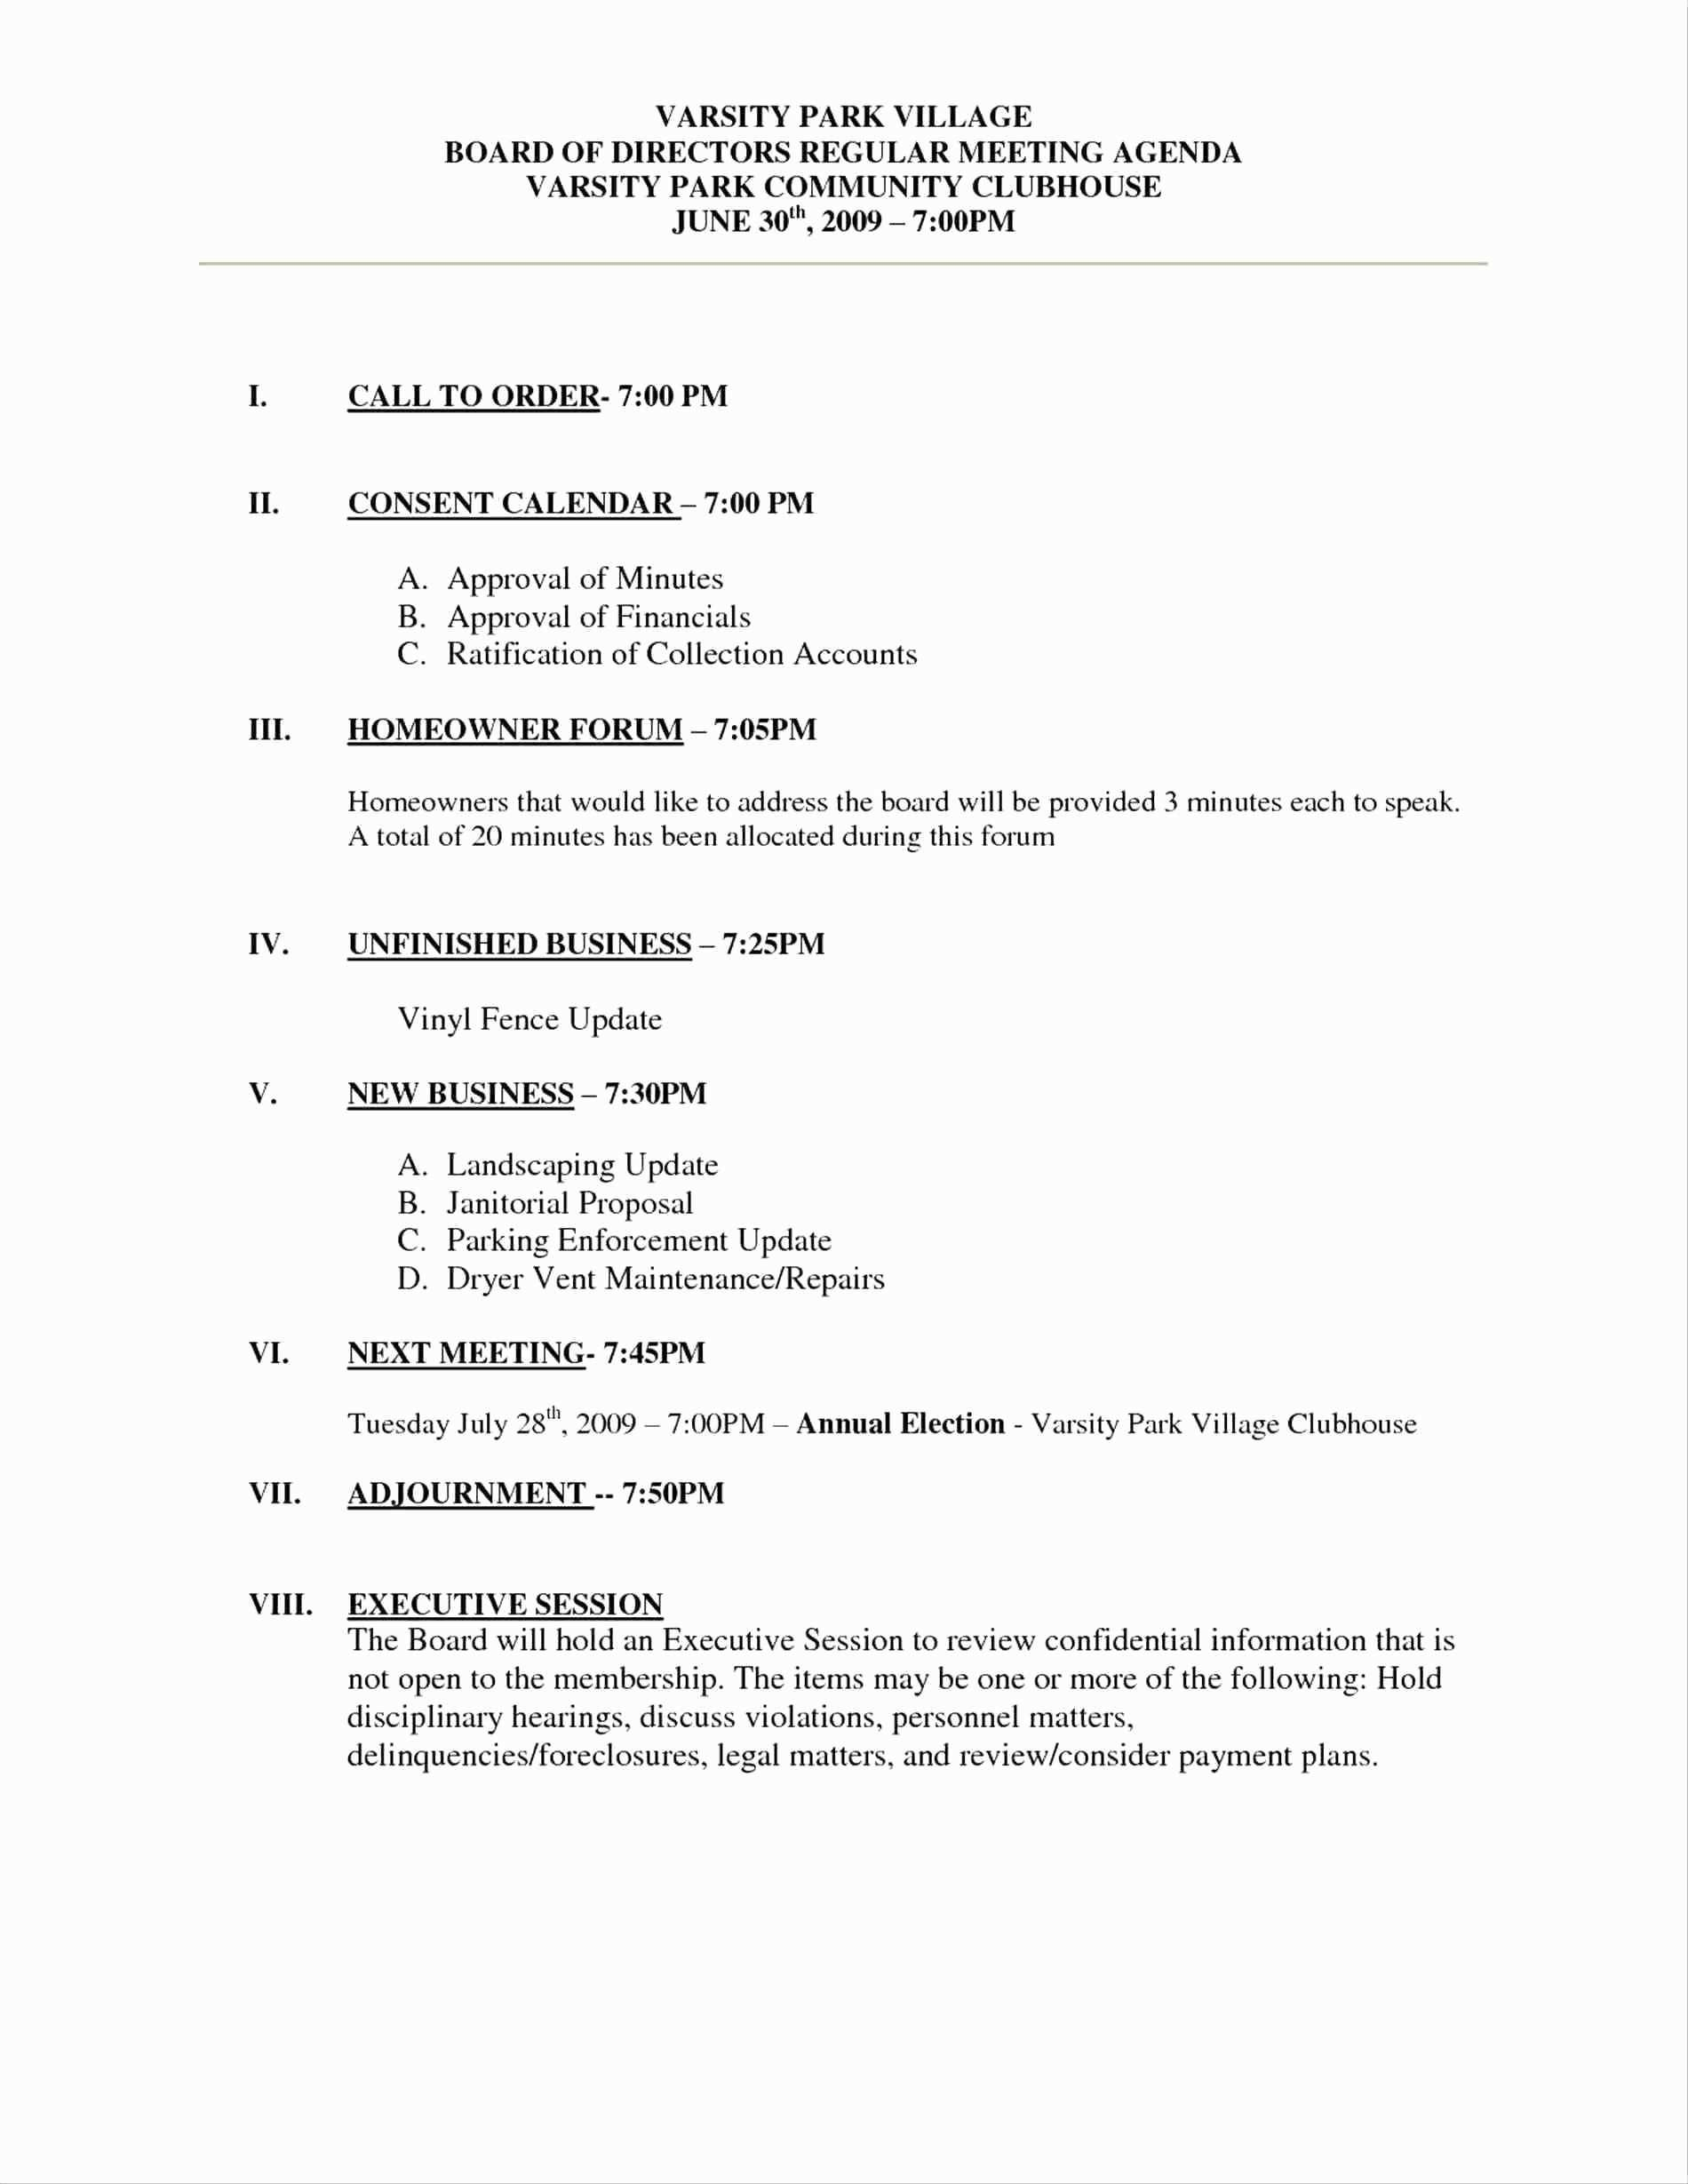 Agenda And Meeting Minutes Template Inspirational 12 13 Word